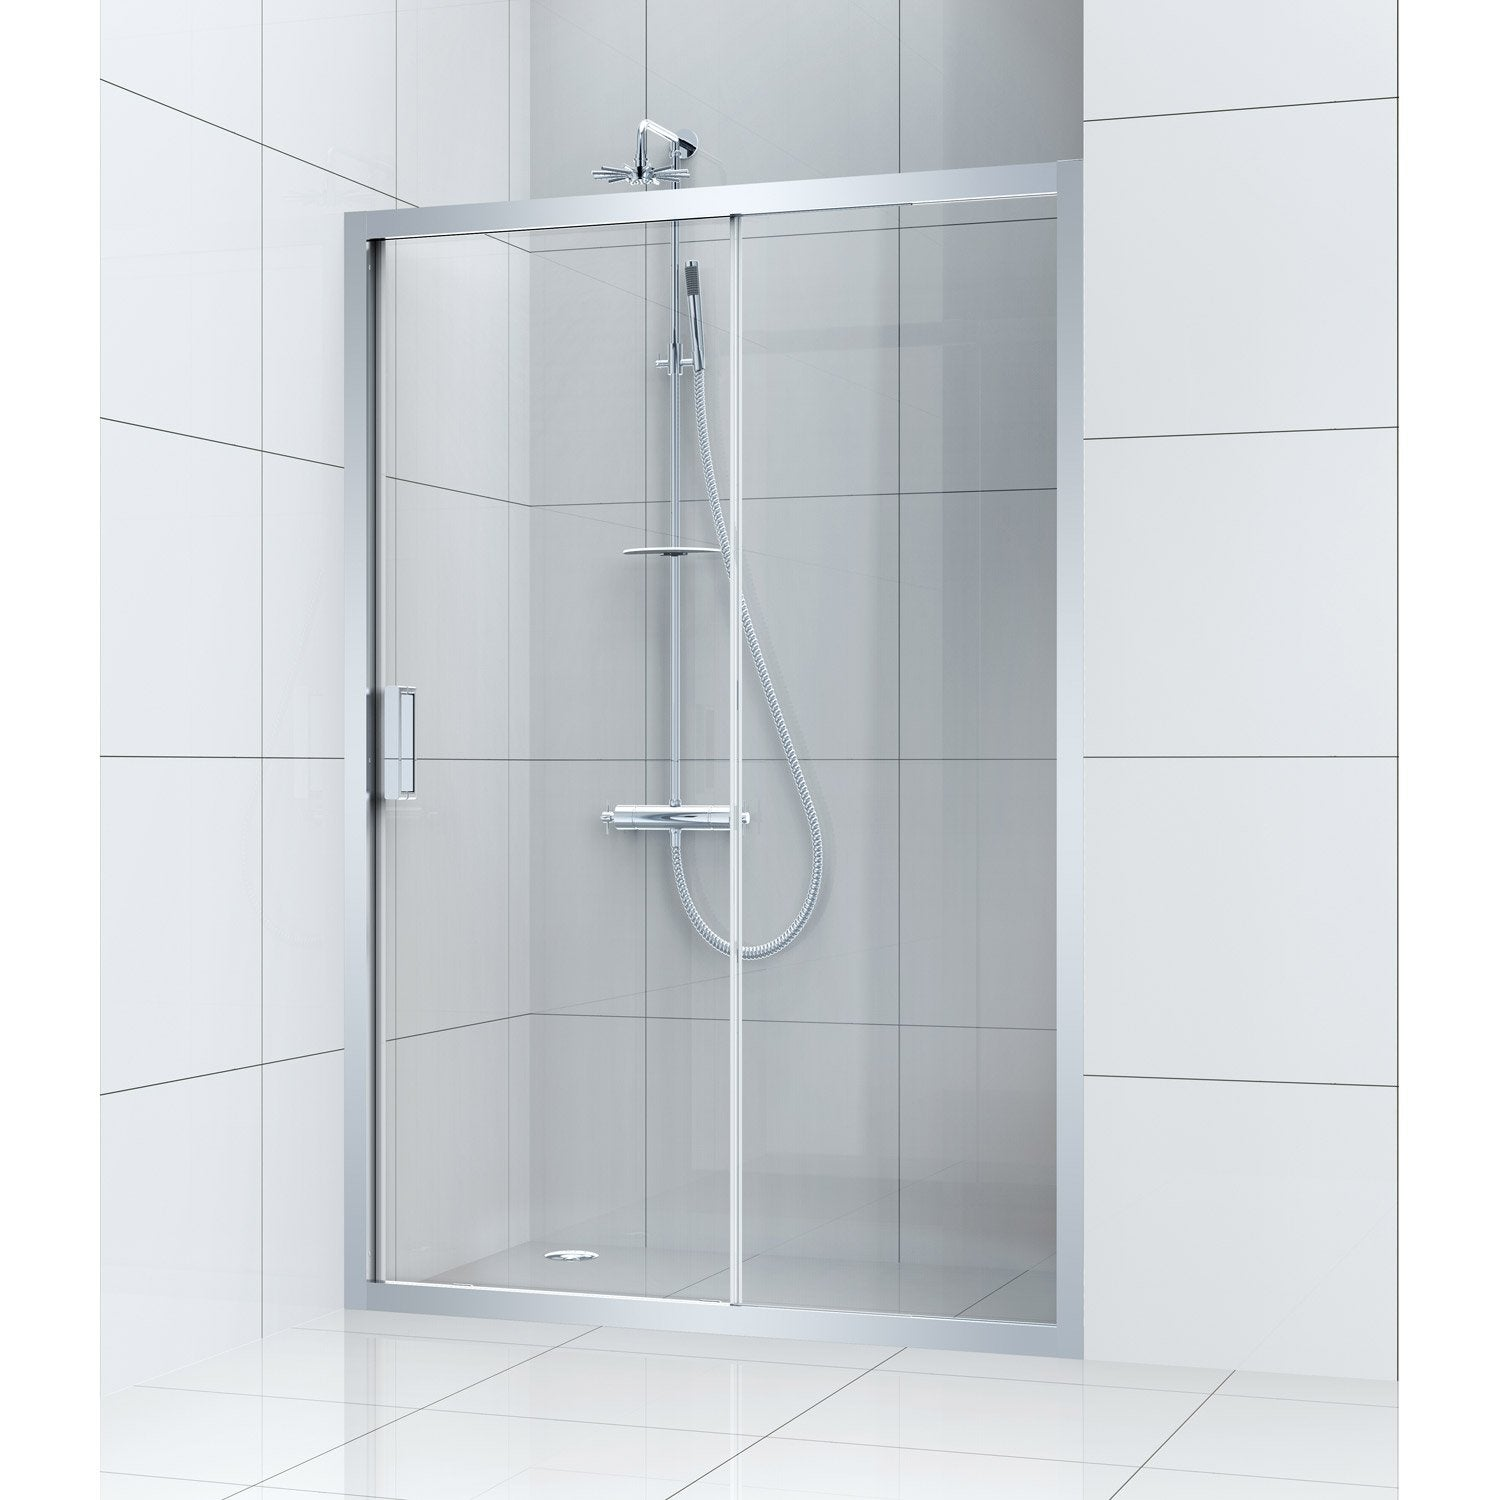 Porte de douche coulissante 120 cm transparent charm for Porte coulissante 120 cm